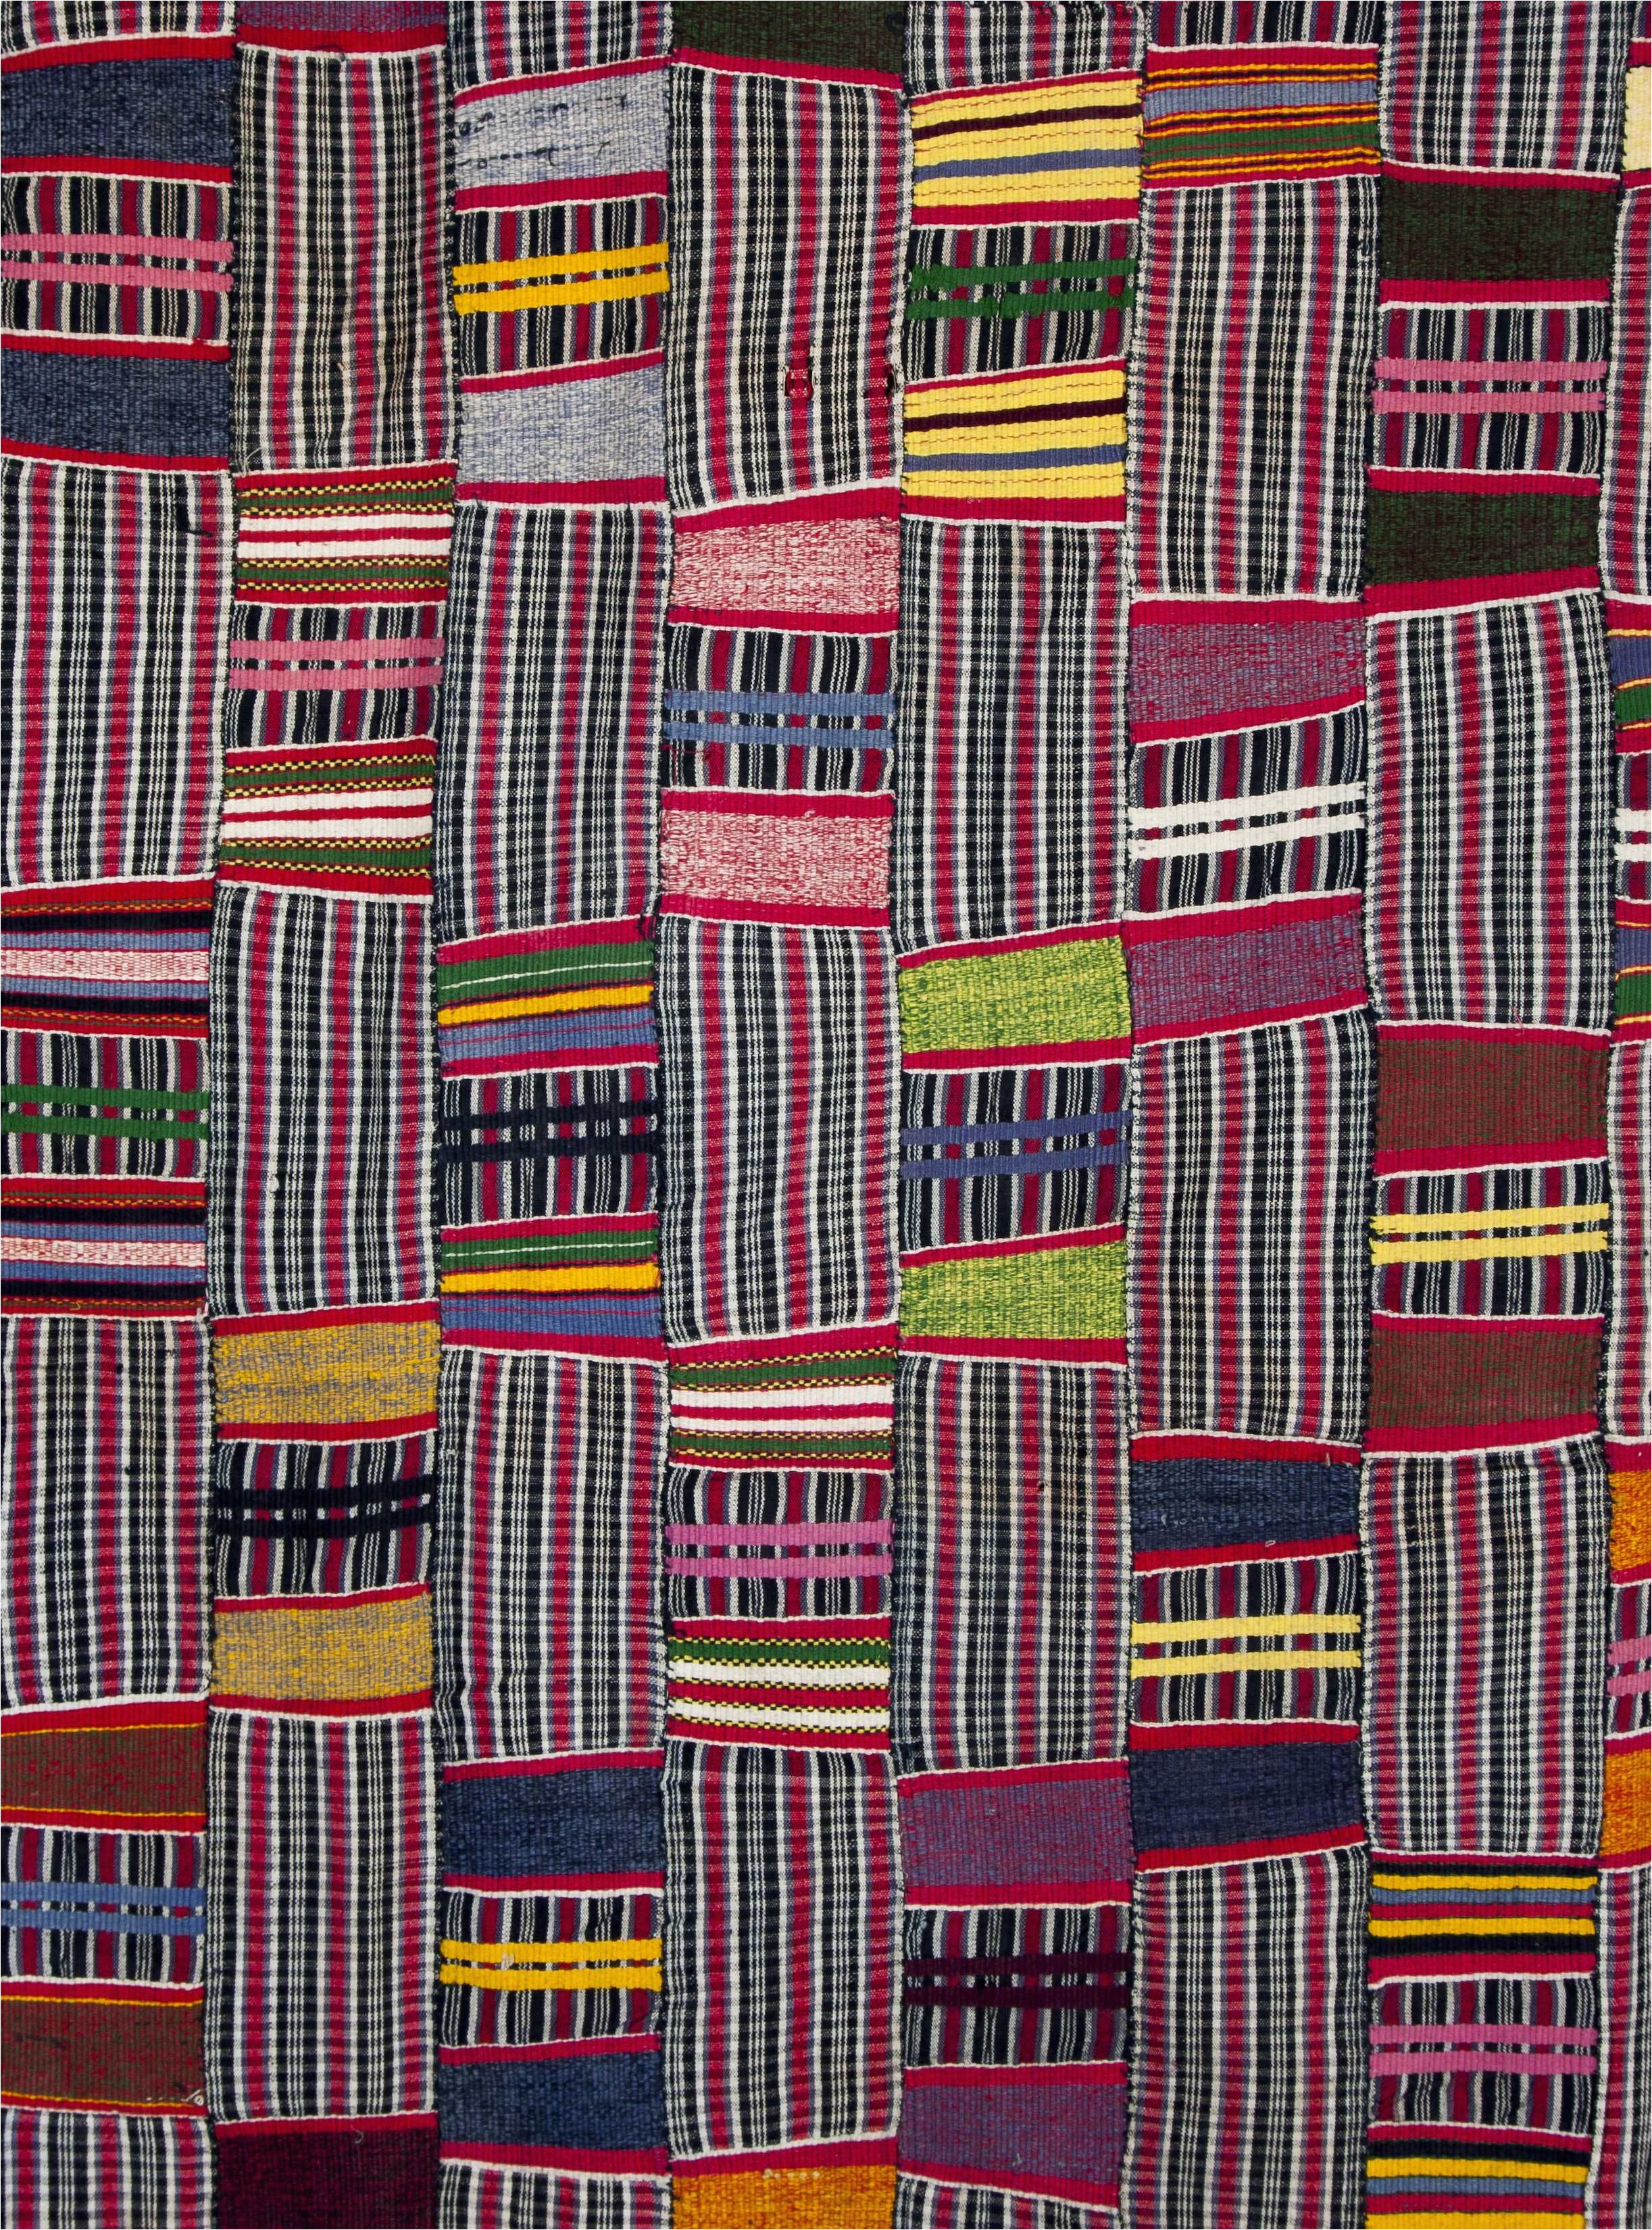 africa details from a strip woven cloth from the ewe people of togo cotton locally woven and dyed